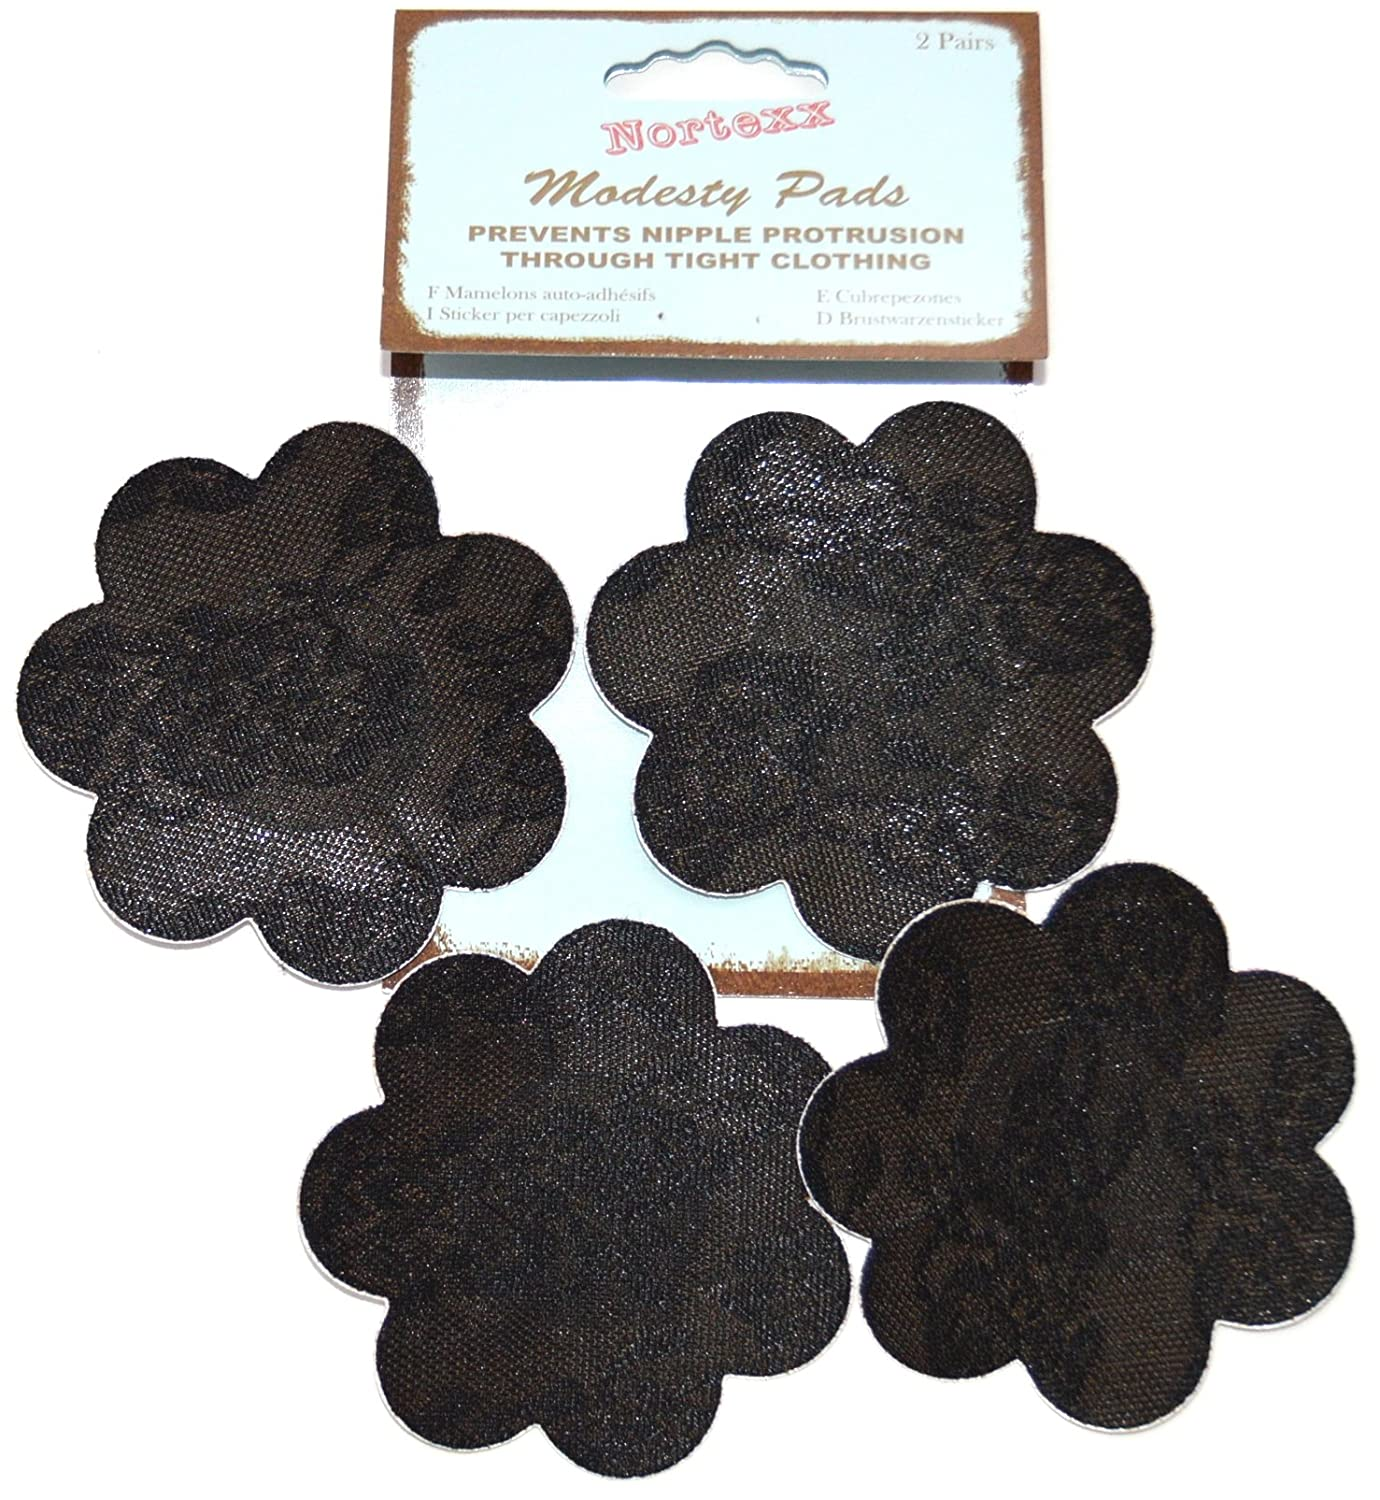 2 Pairs Nortexx Modesty Pads Self Adhesive Nipple Covers Black or Nude NMP200X